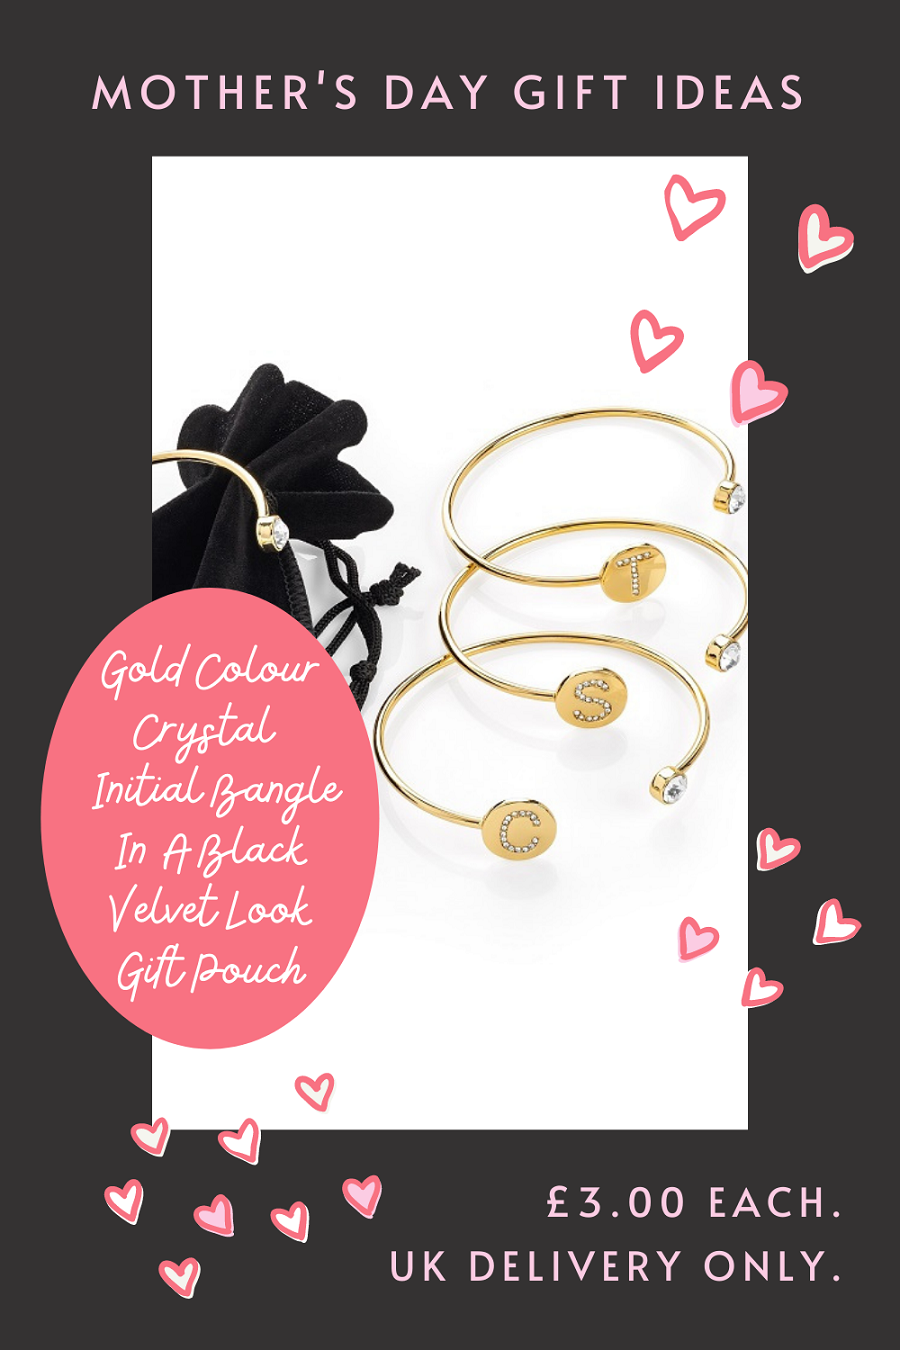 Gold Colour Crystal Initial Bangle: Mother's Day Gifts